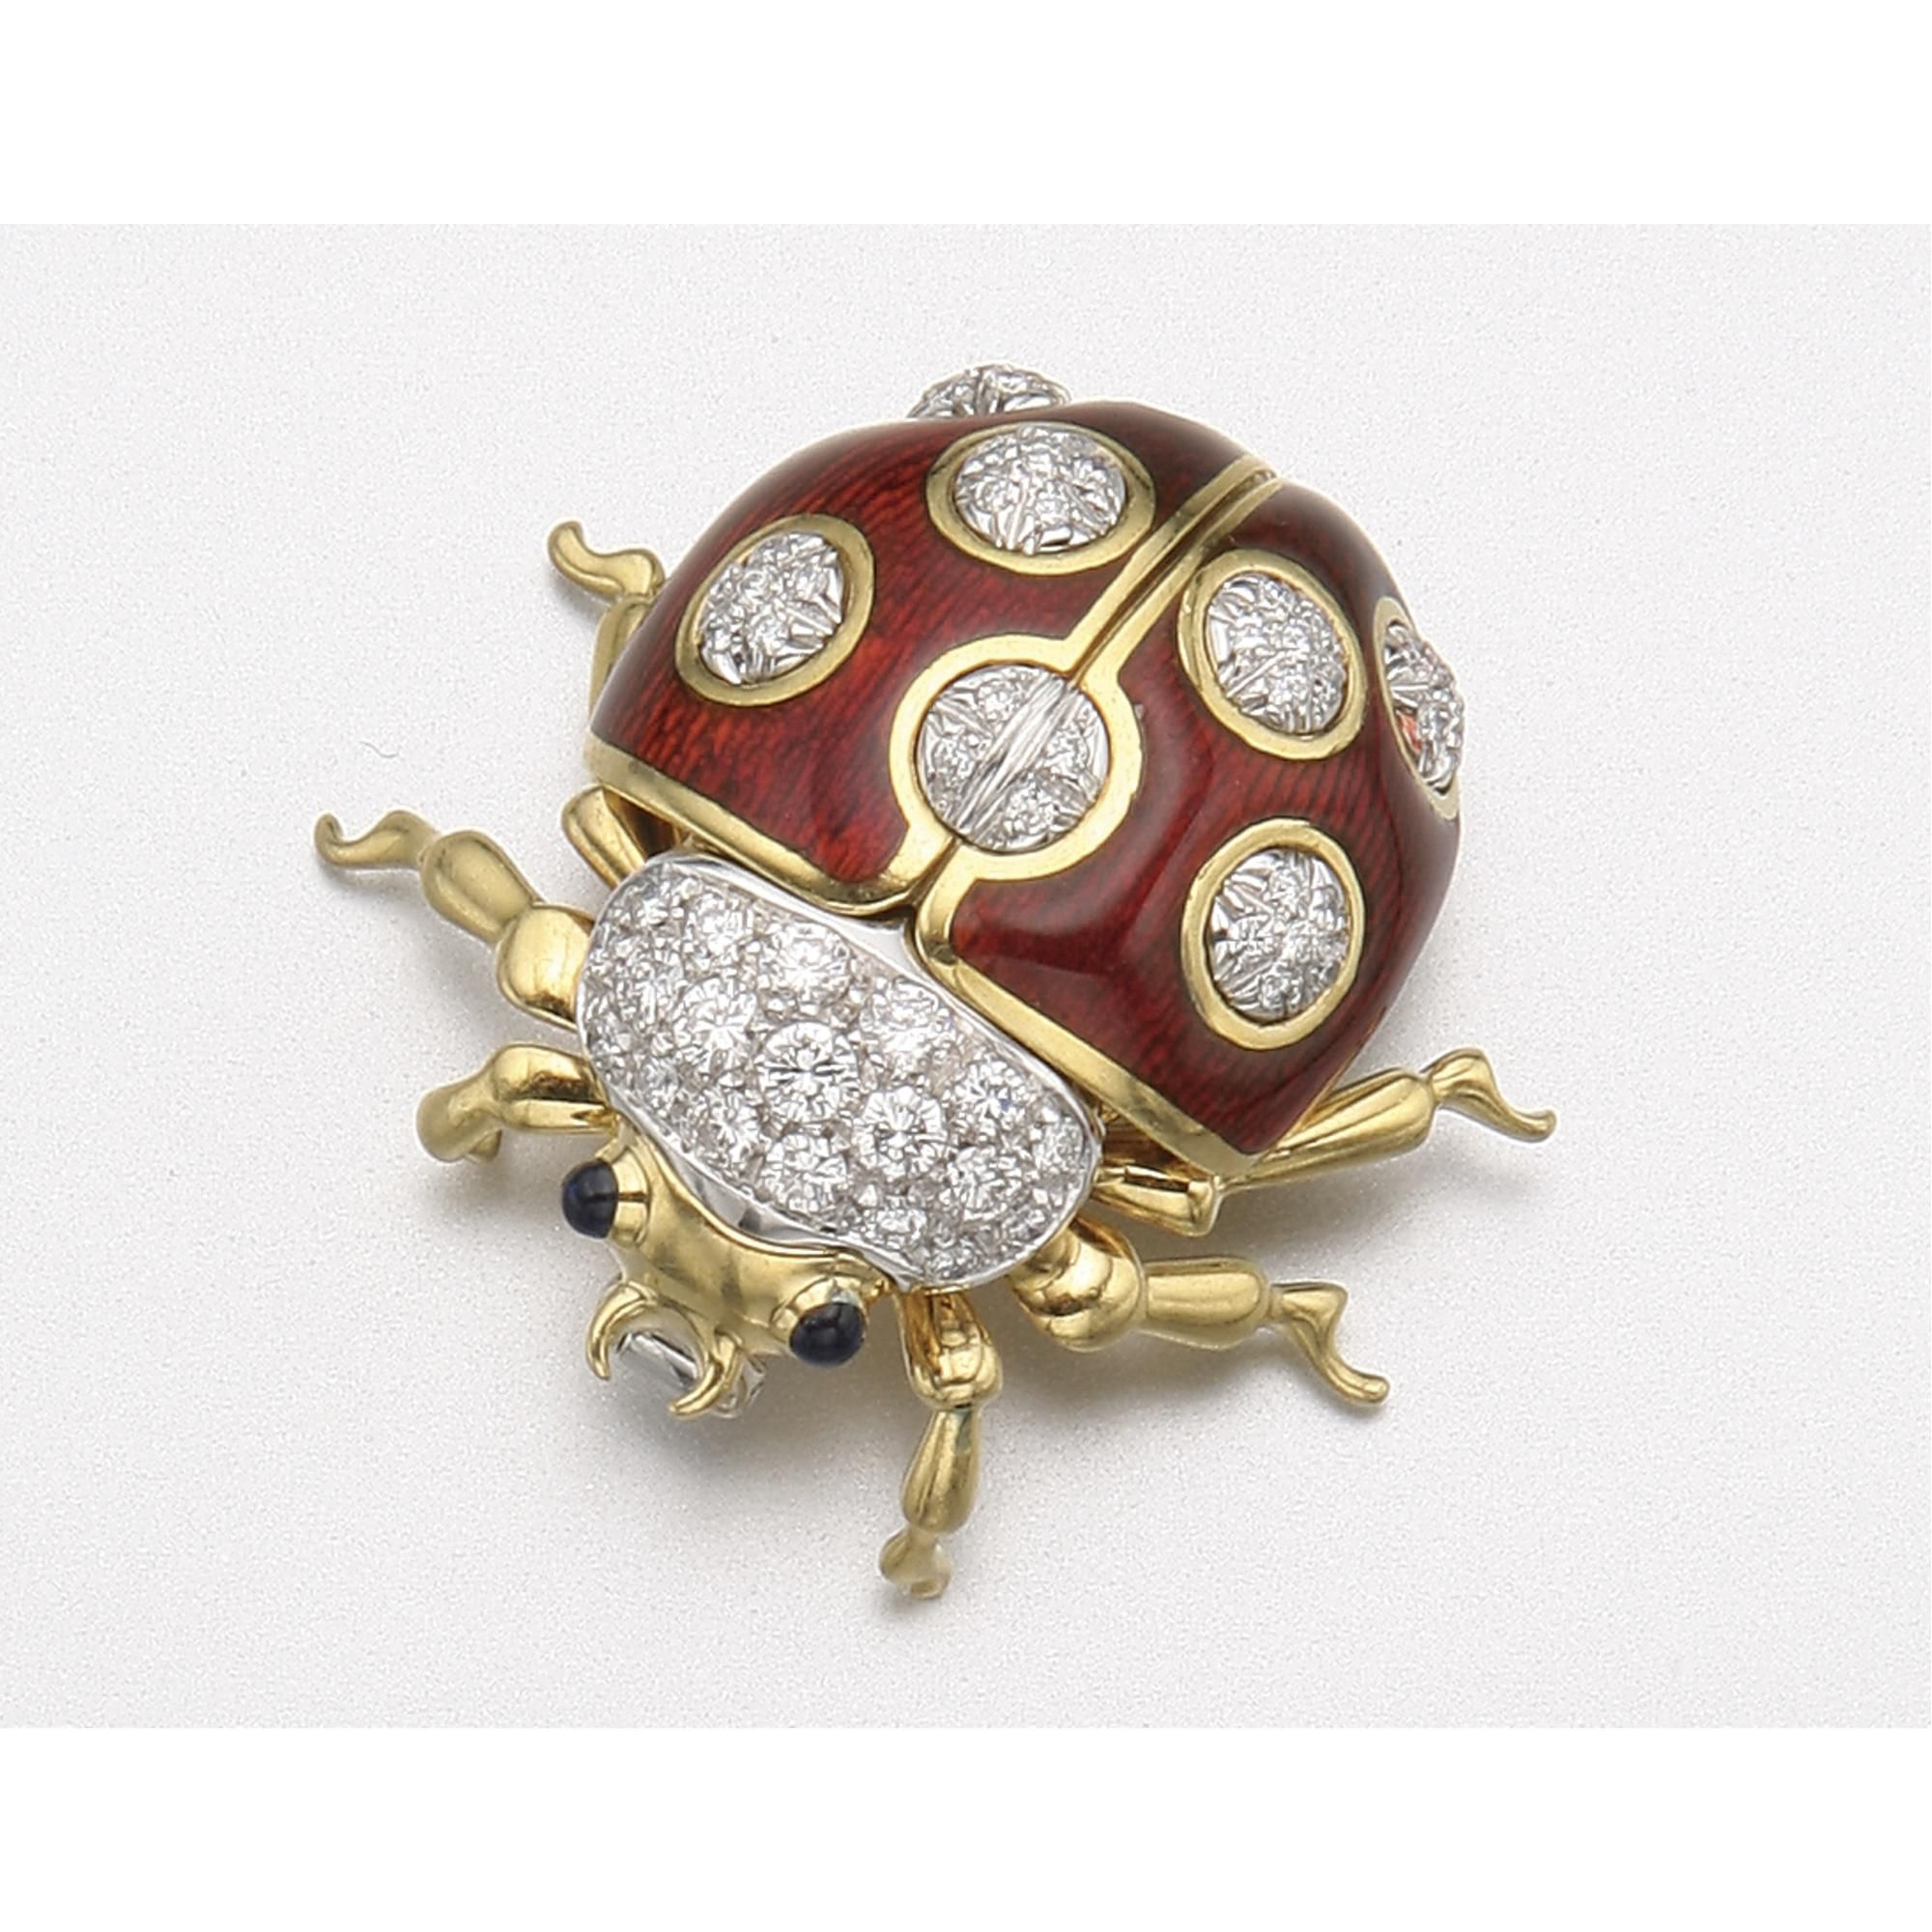 qajar jewellery a and persia enamelled brooch large gold pin jewelled